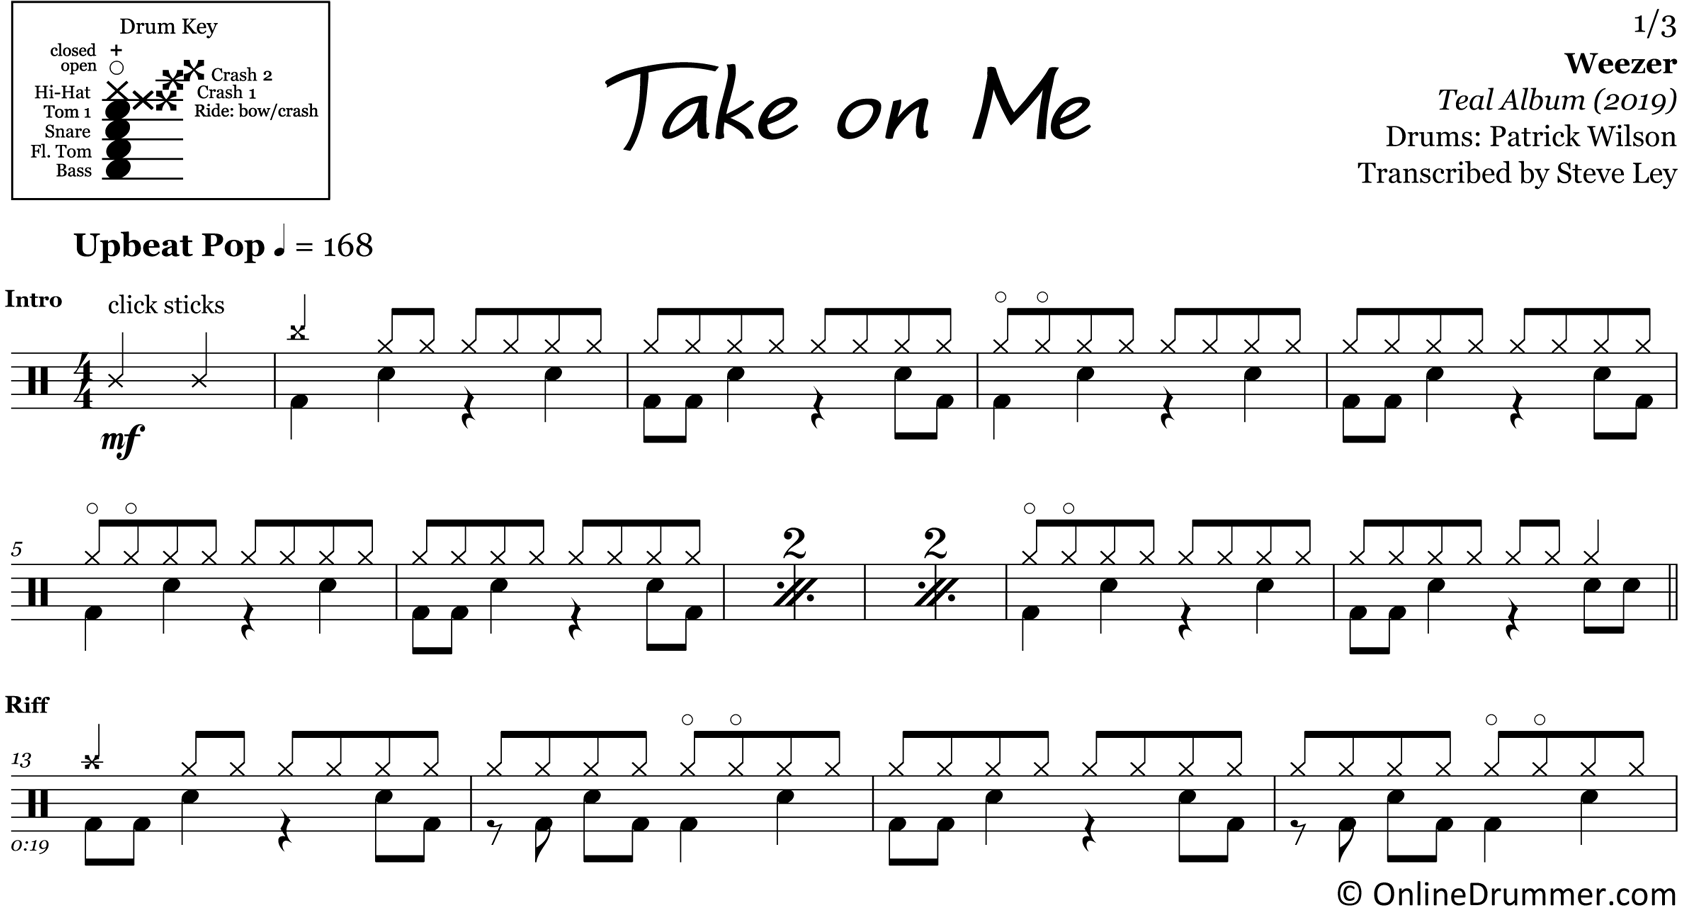 Take on Me - Weezer - Drum Sheet Music